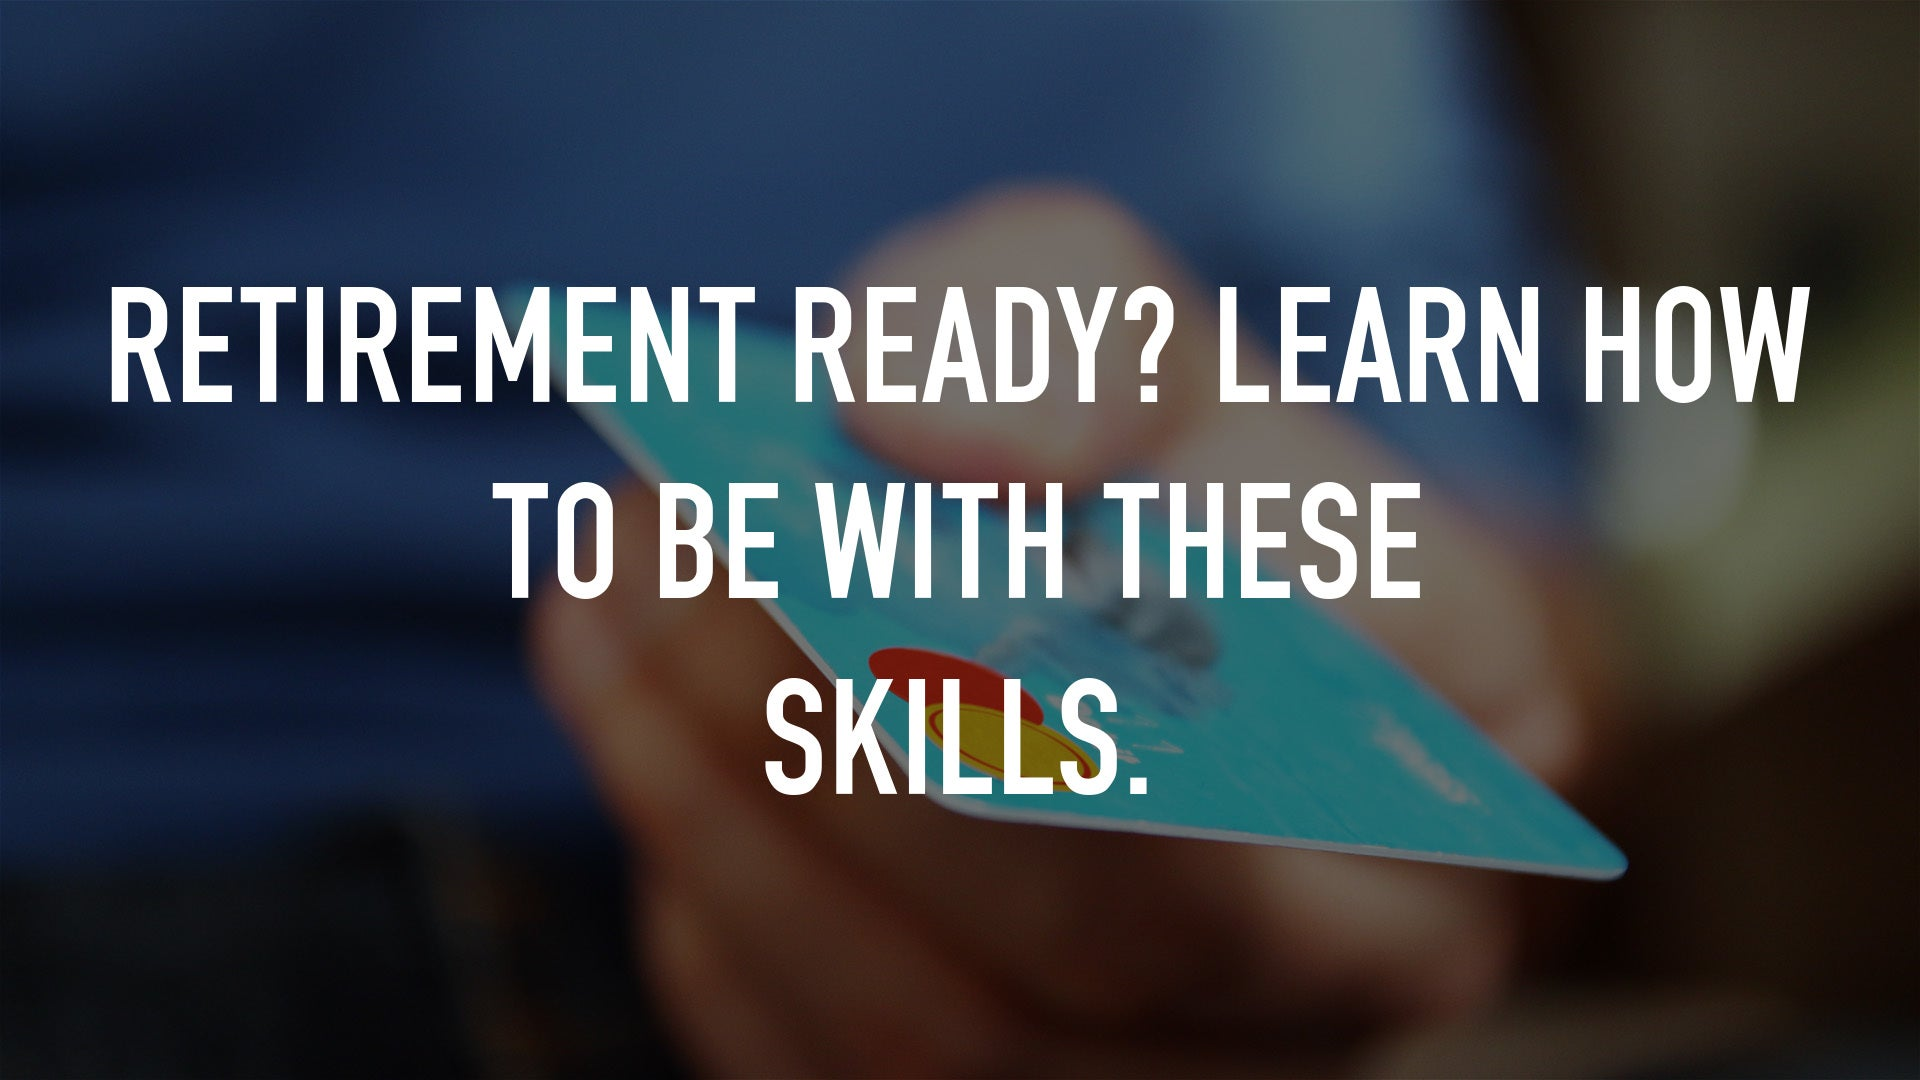 Retirement Ready? Learn How To Be With These Skills.